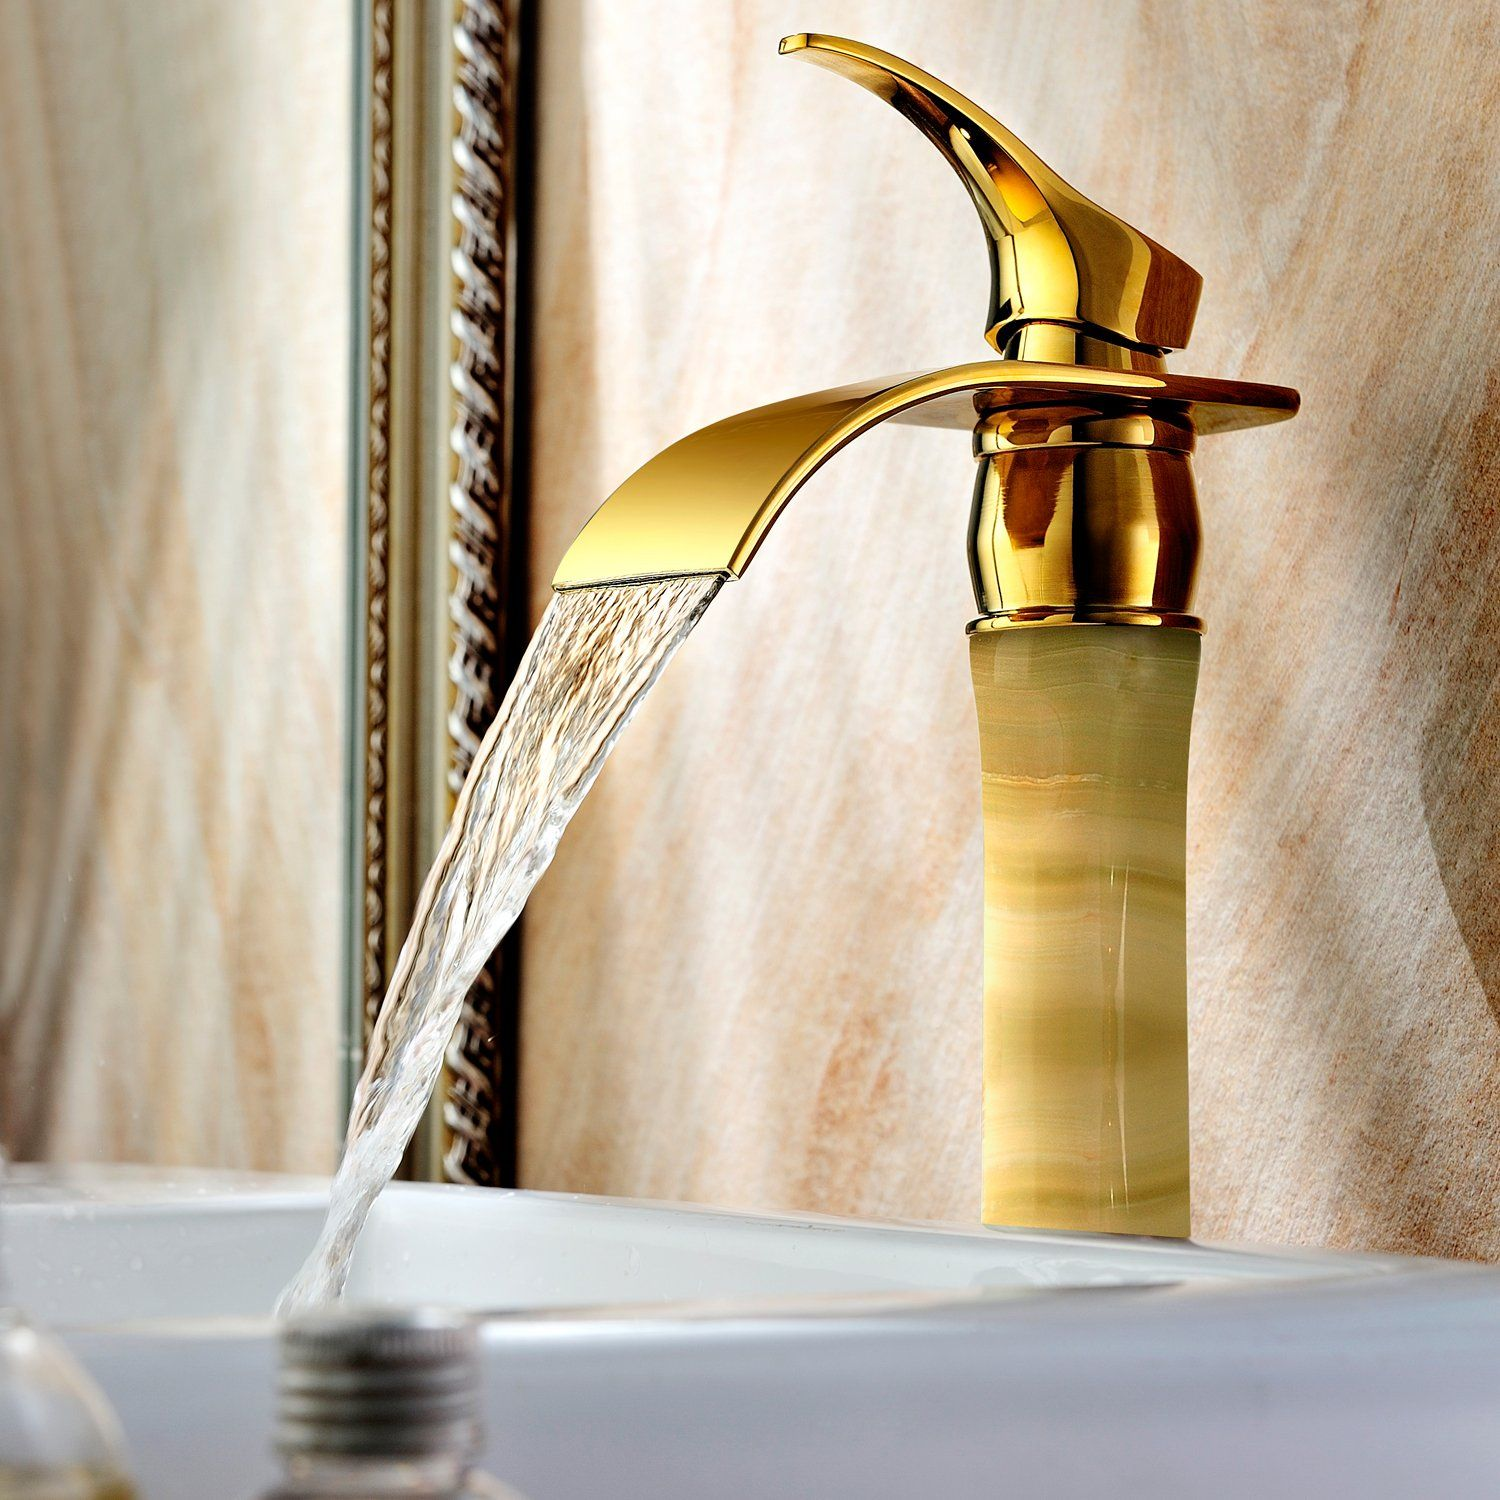 OASD Deck Mount Bathroom Faucet Full Copper Waterfall Washbasin ...